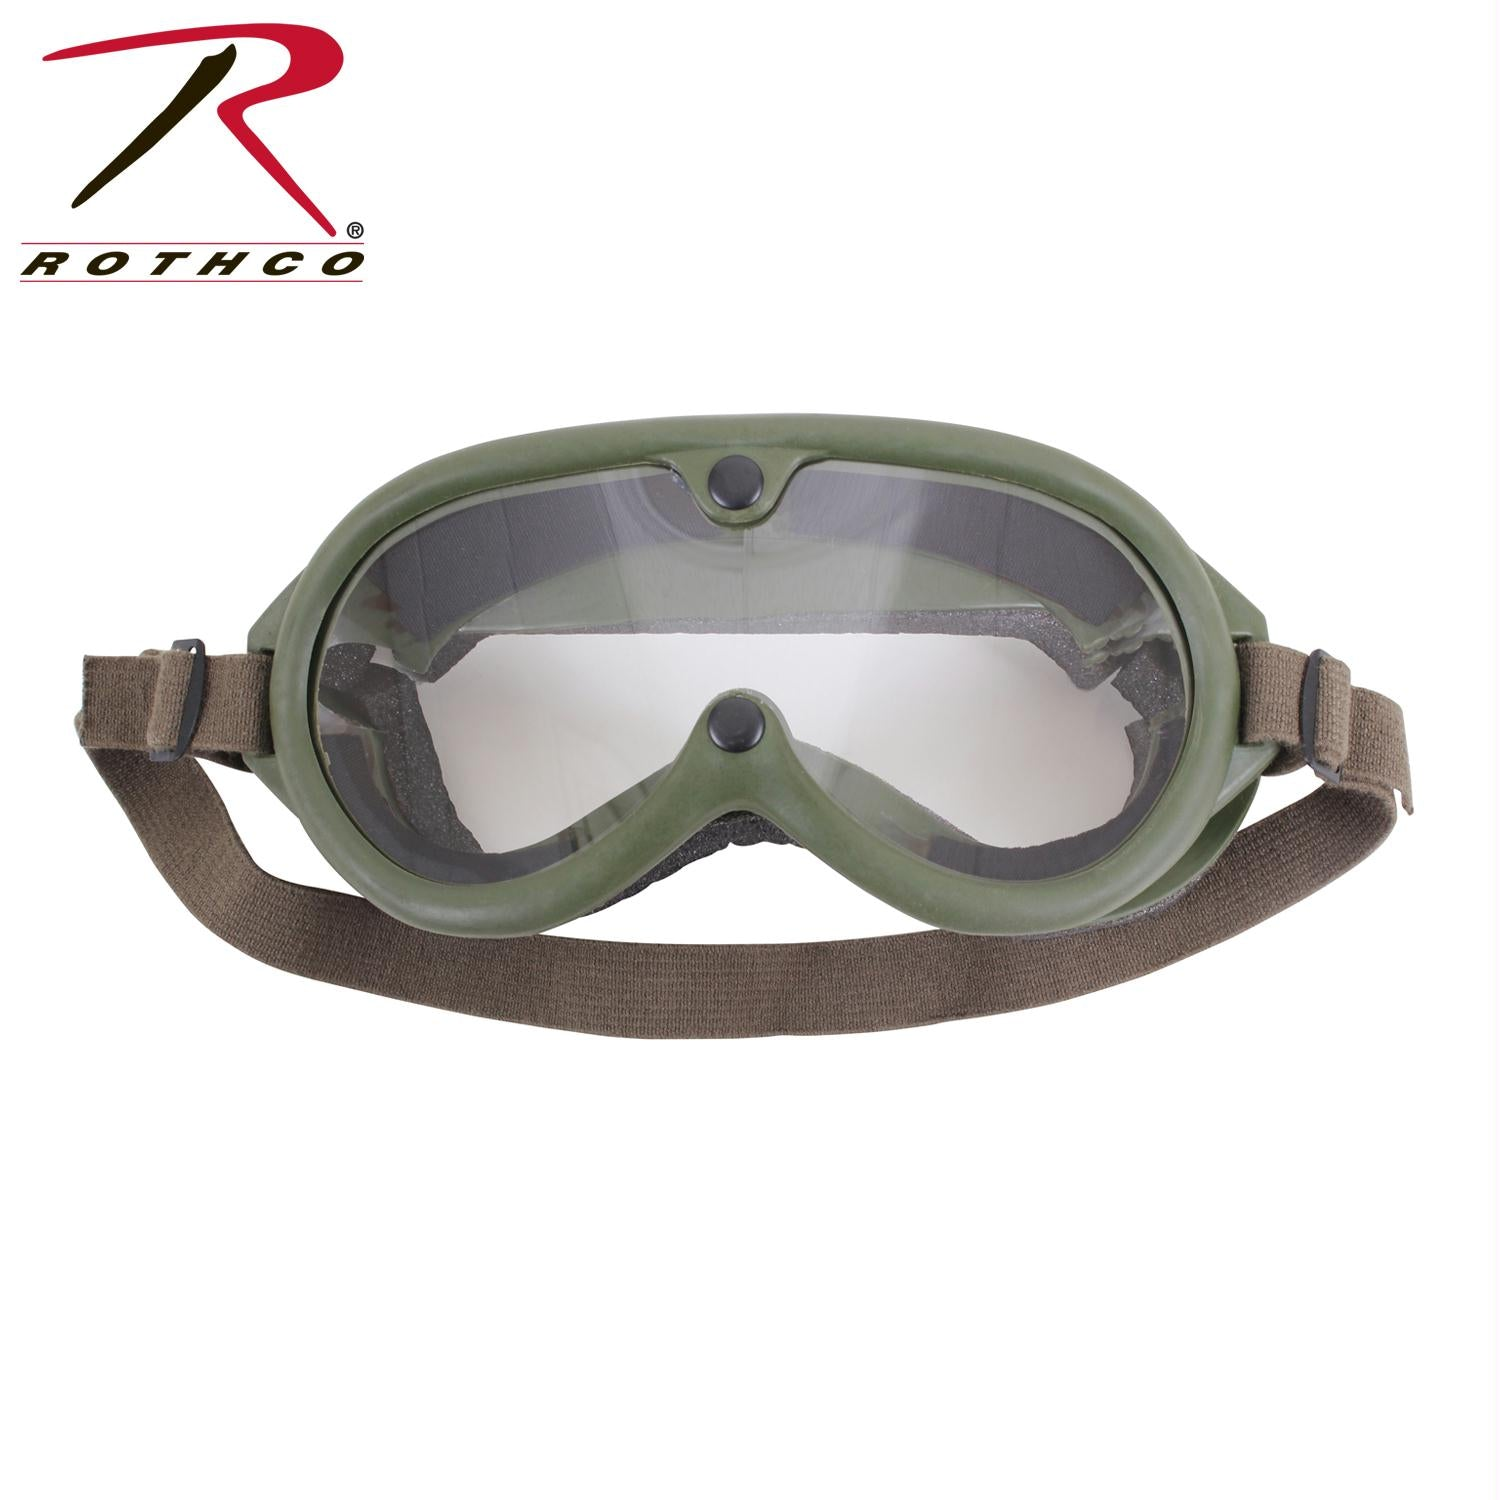 Rothco G.I. Type Sun, Wind & Dust Goggles